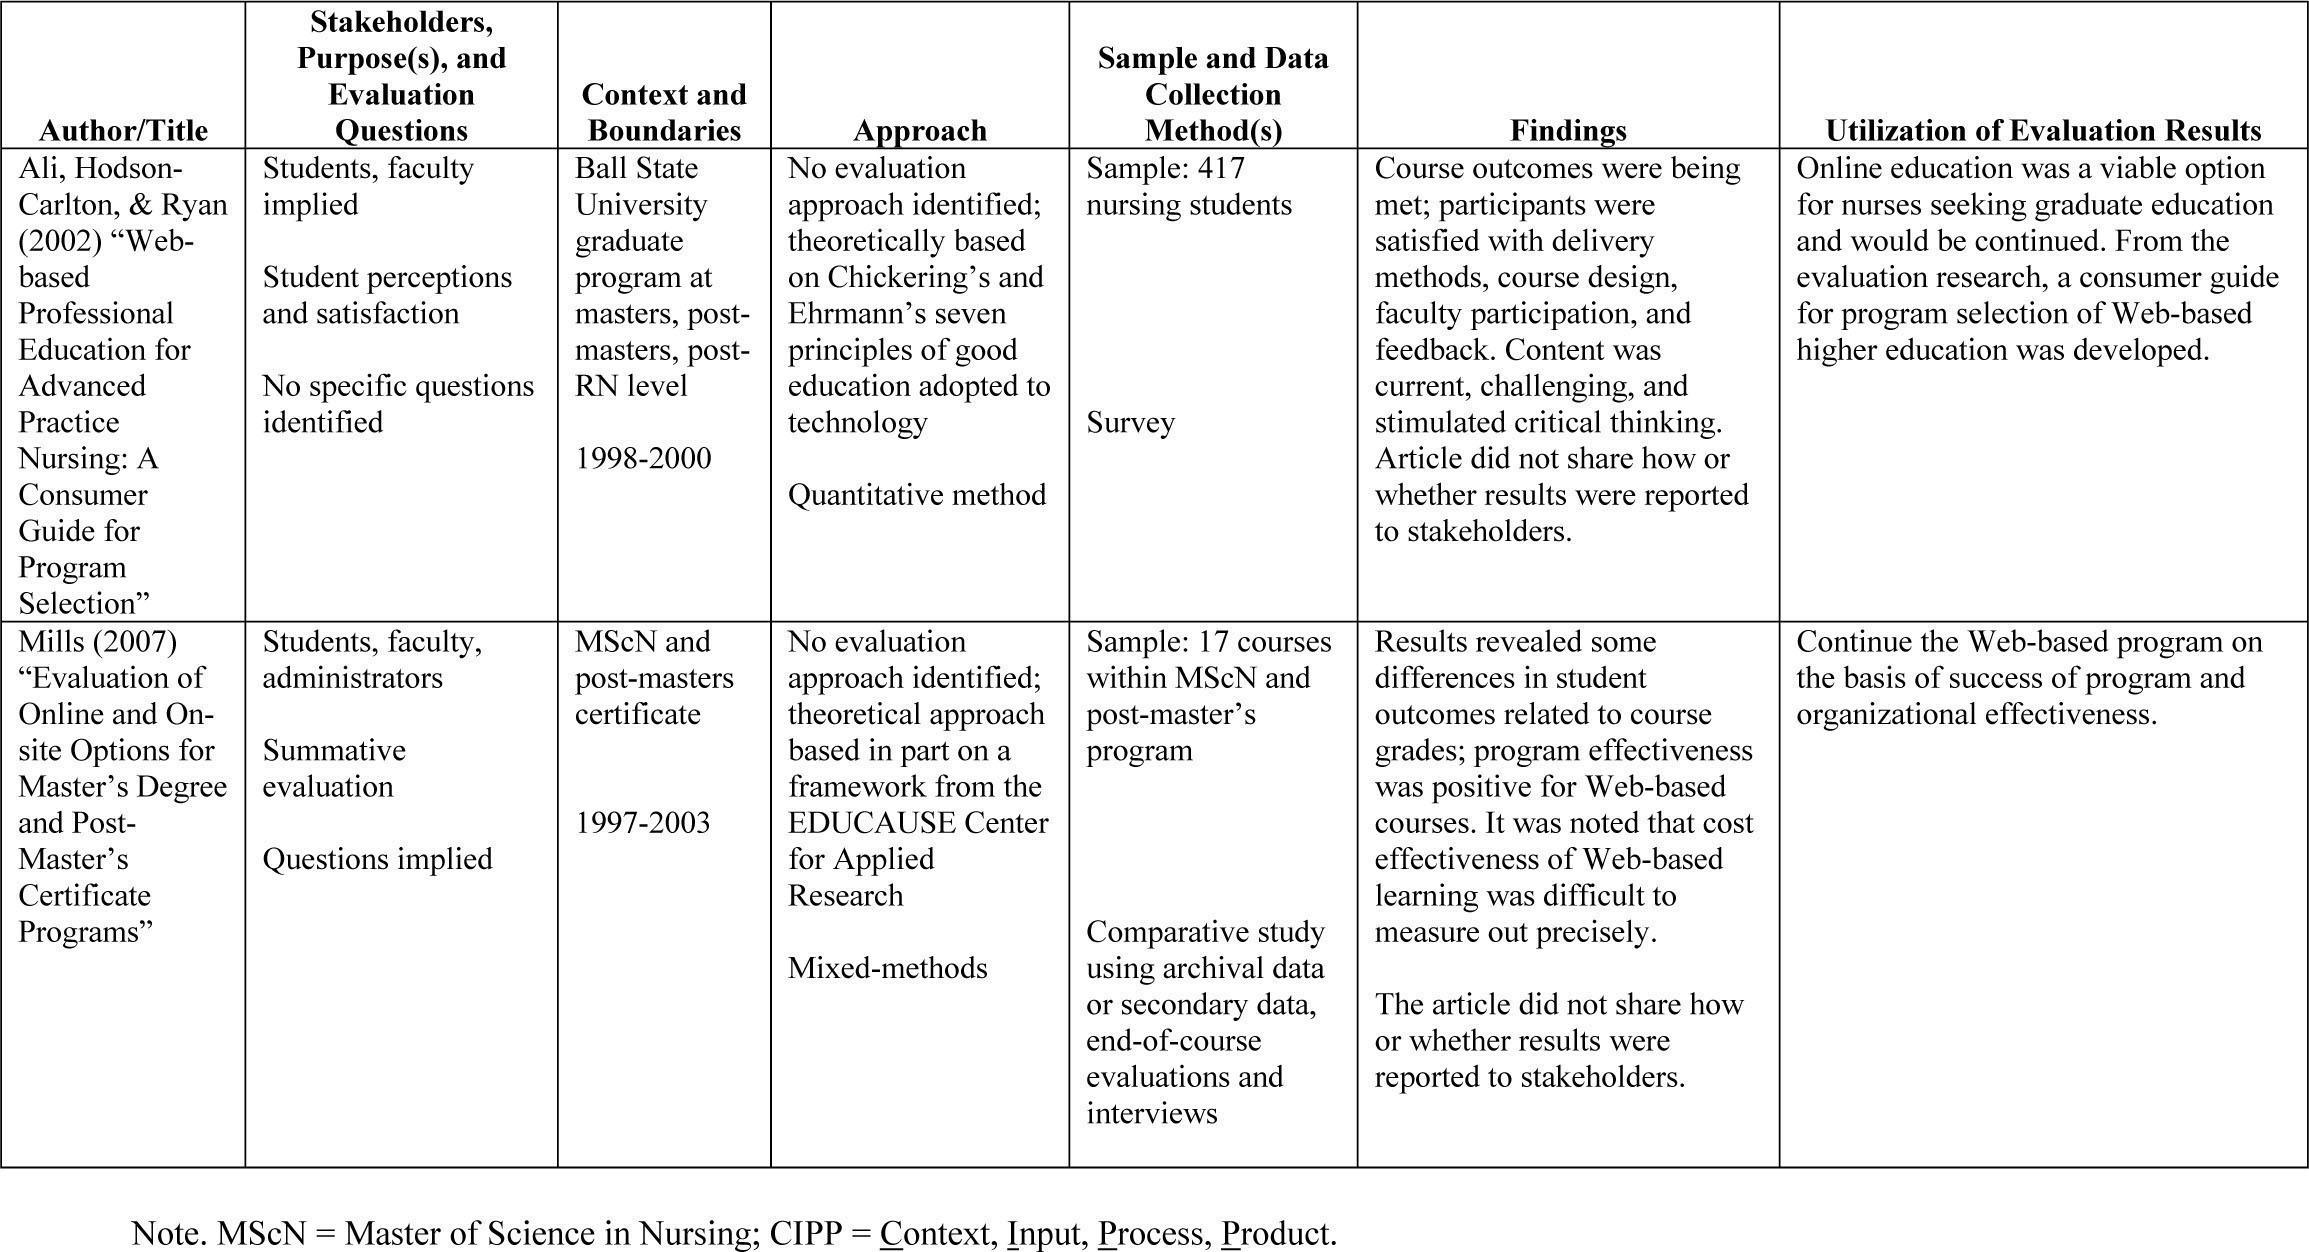 Summary of Evaluation Frameworks and Models used in Online Education Programs